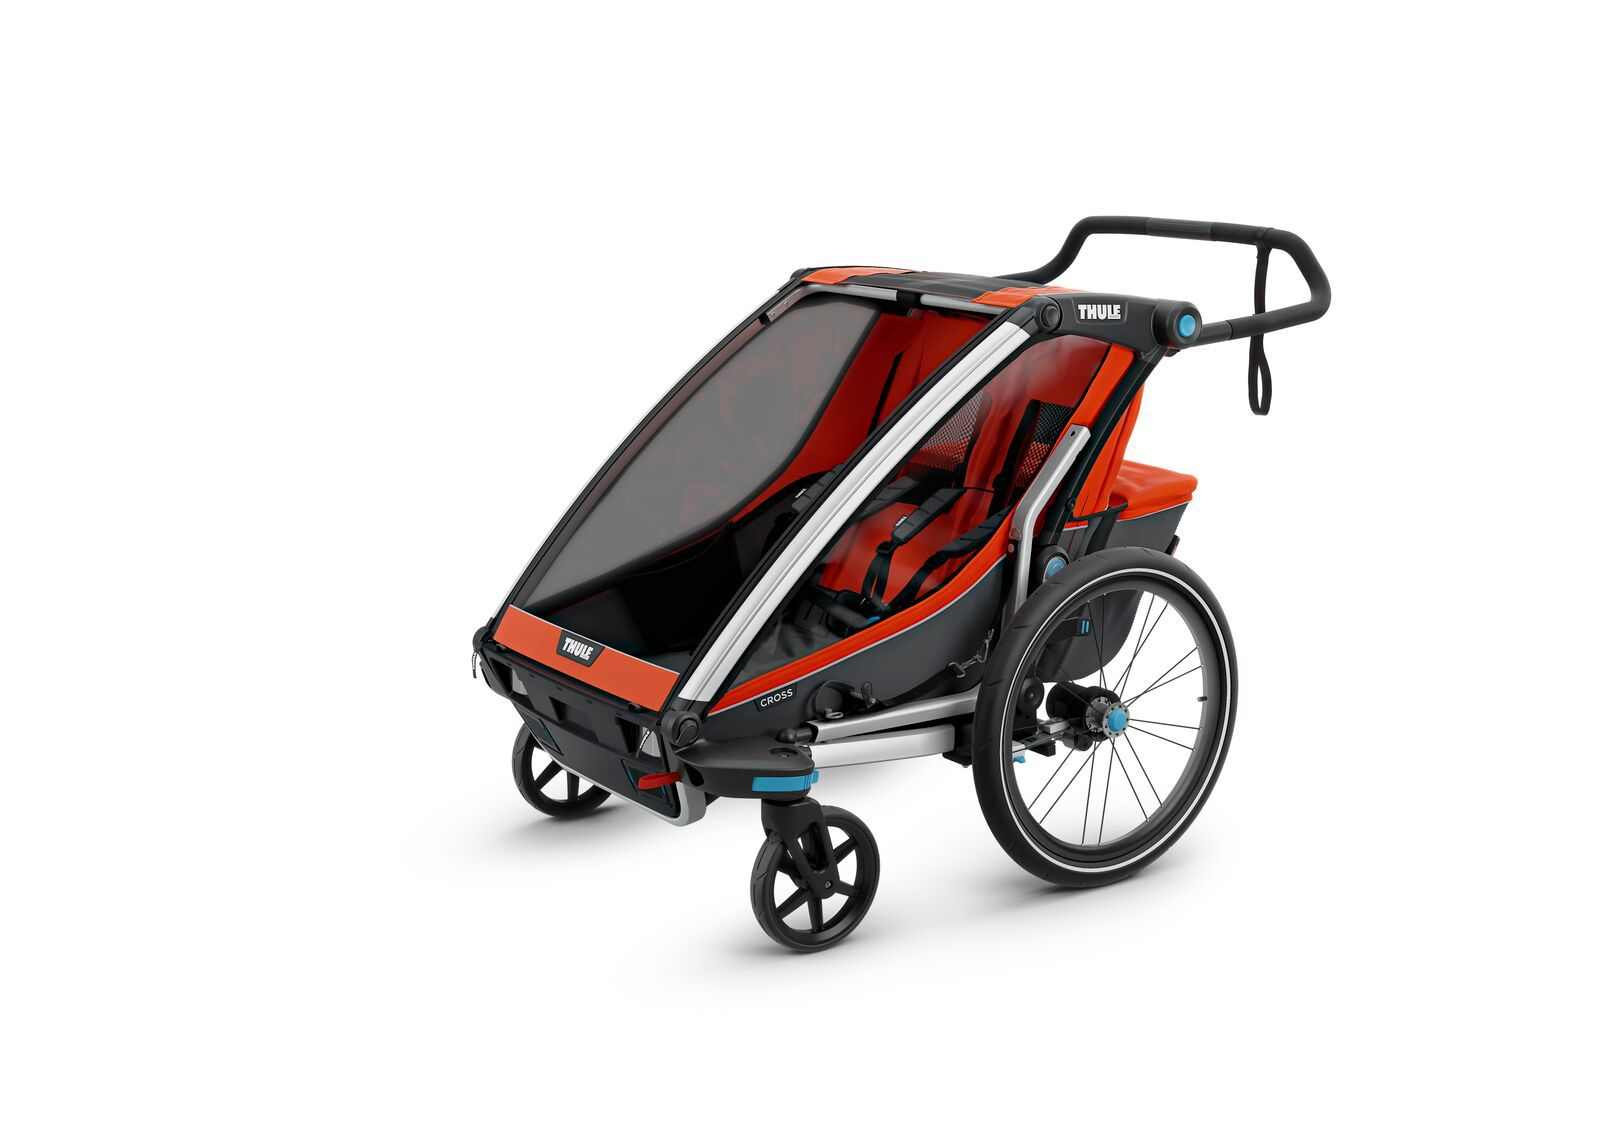 MULTIFUNCIONAL BIKE TRAILER CHARIOT CROSS 2 ROARANGE- THULE